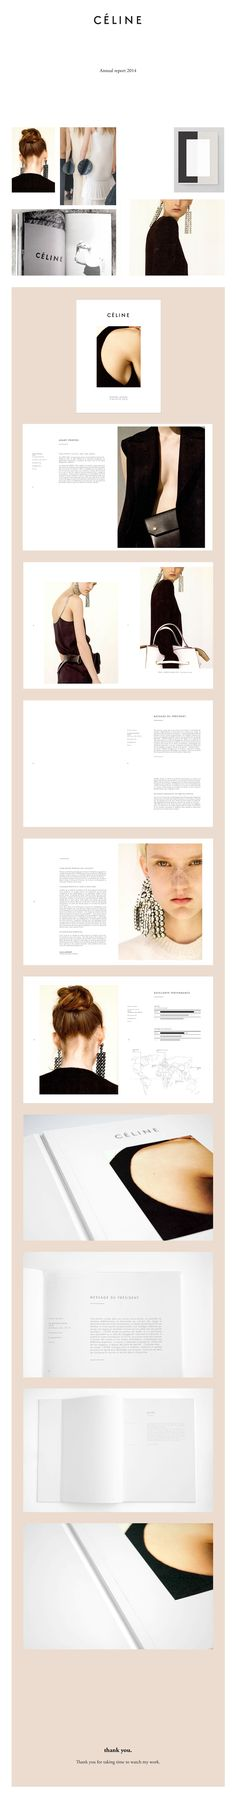 Céline - Annual report on Behance